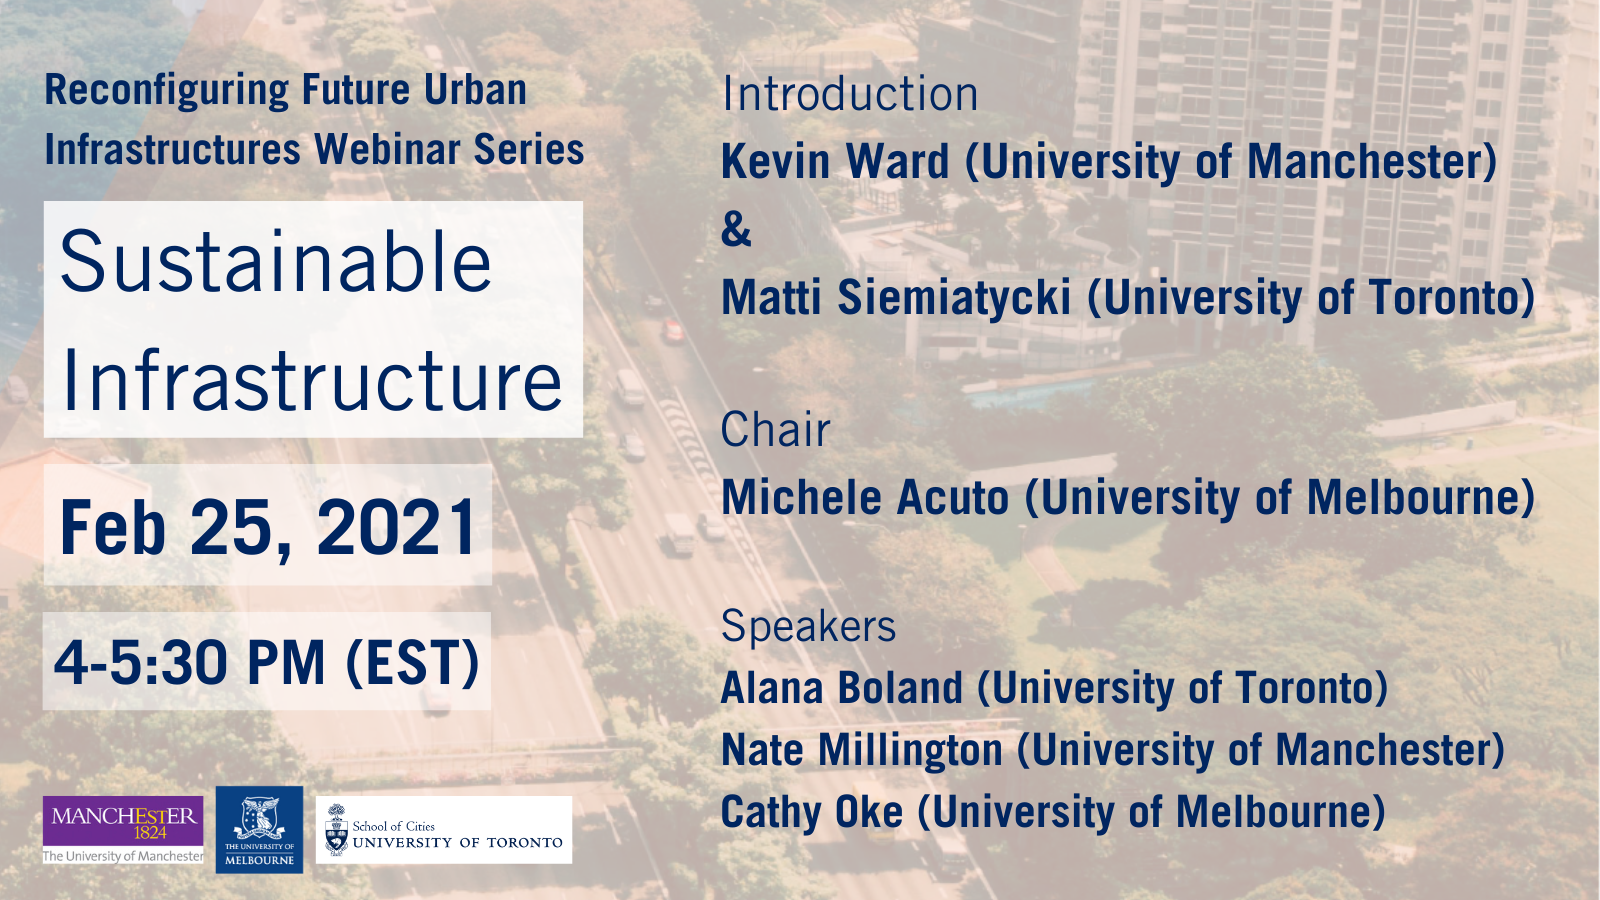 Reconfiguring Future Urban Infrastructures Webinar Series Session 1 Sustainable Infrastructure Info card